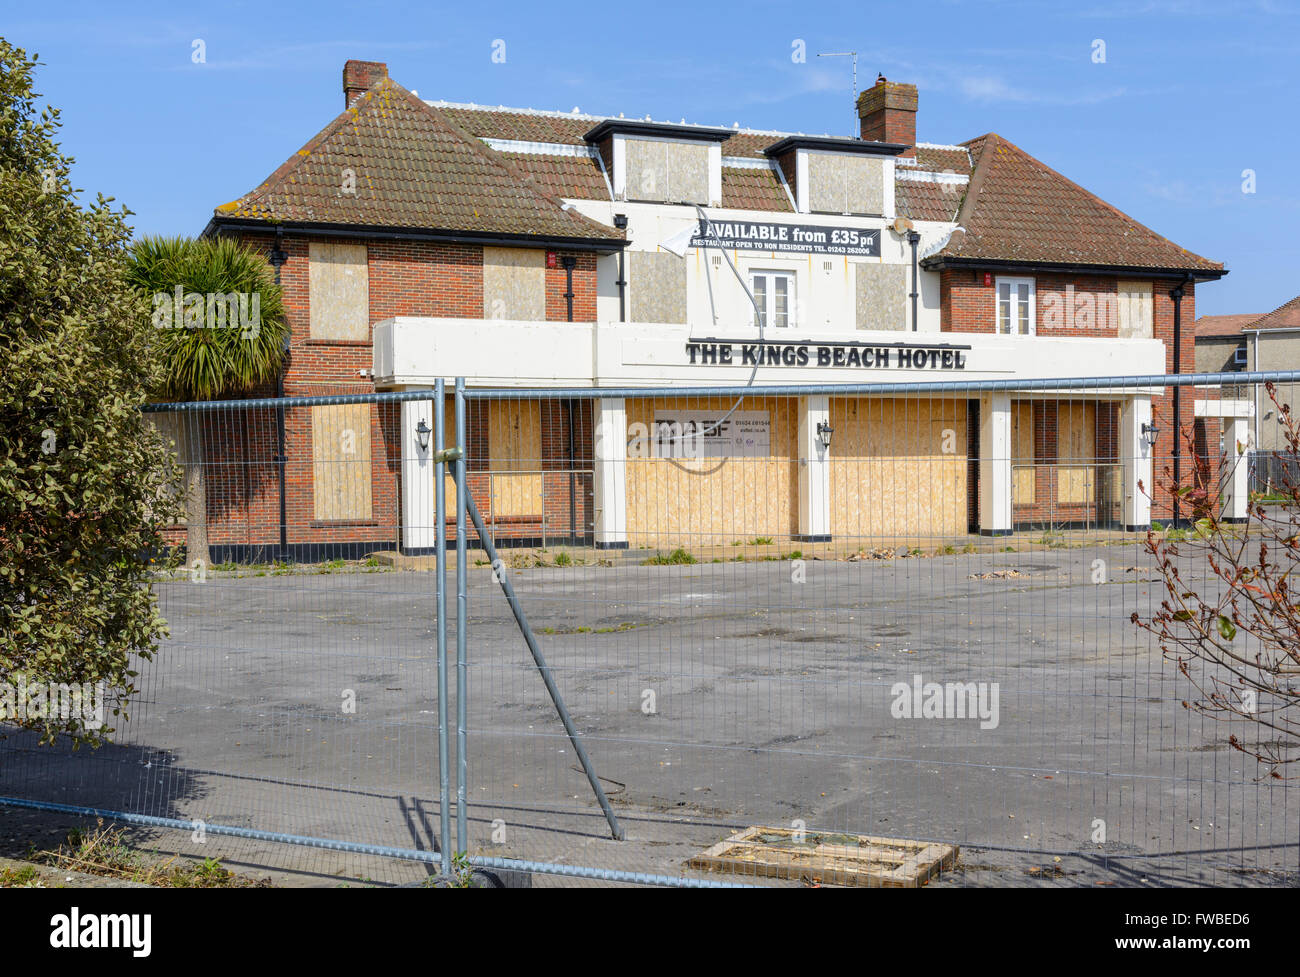 The Kings Beach Hotel after closure in Pagham, West Sussex, England, UK. - Stock Image